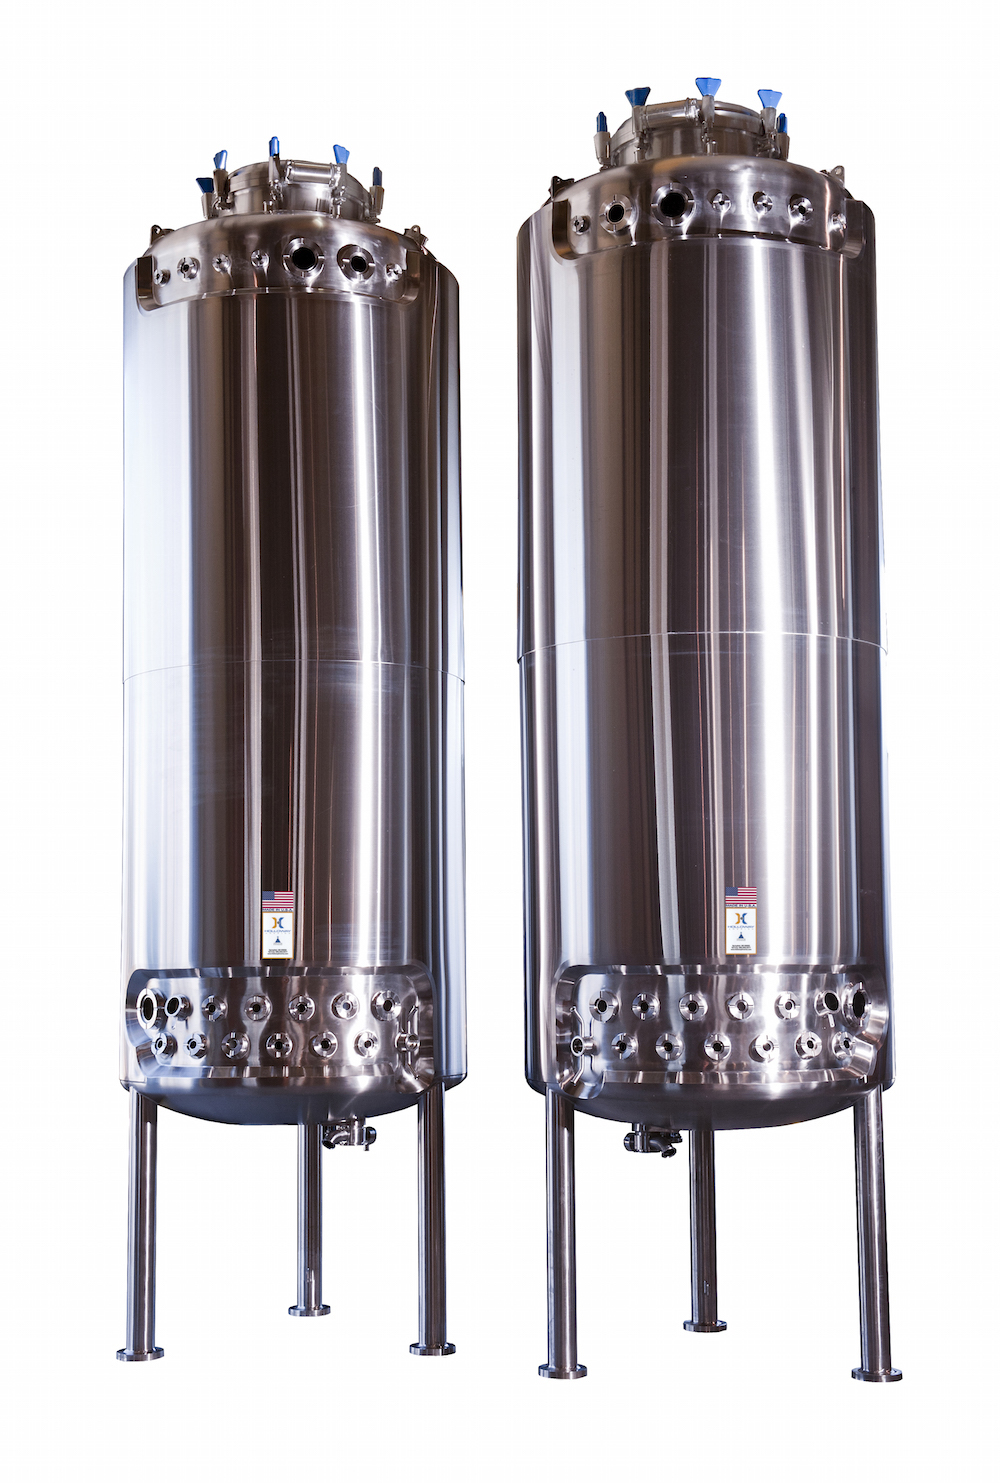 Like our batch reactor design vessels, these stainless steel fermenters are tested to excel.